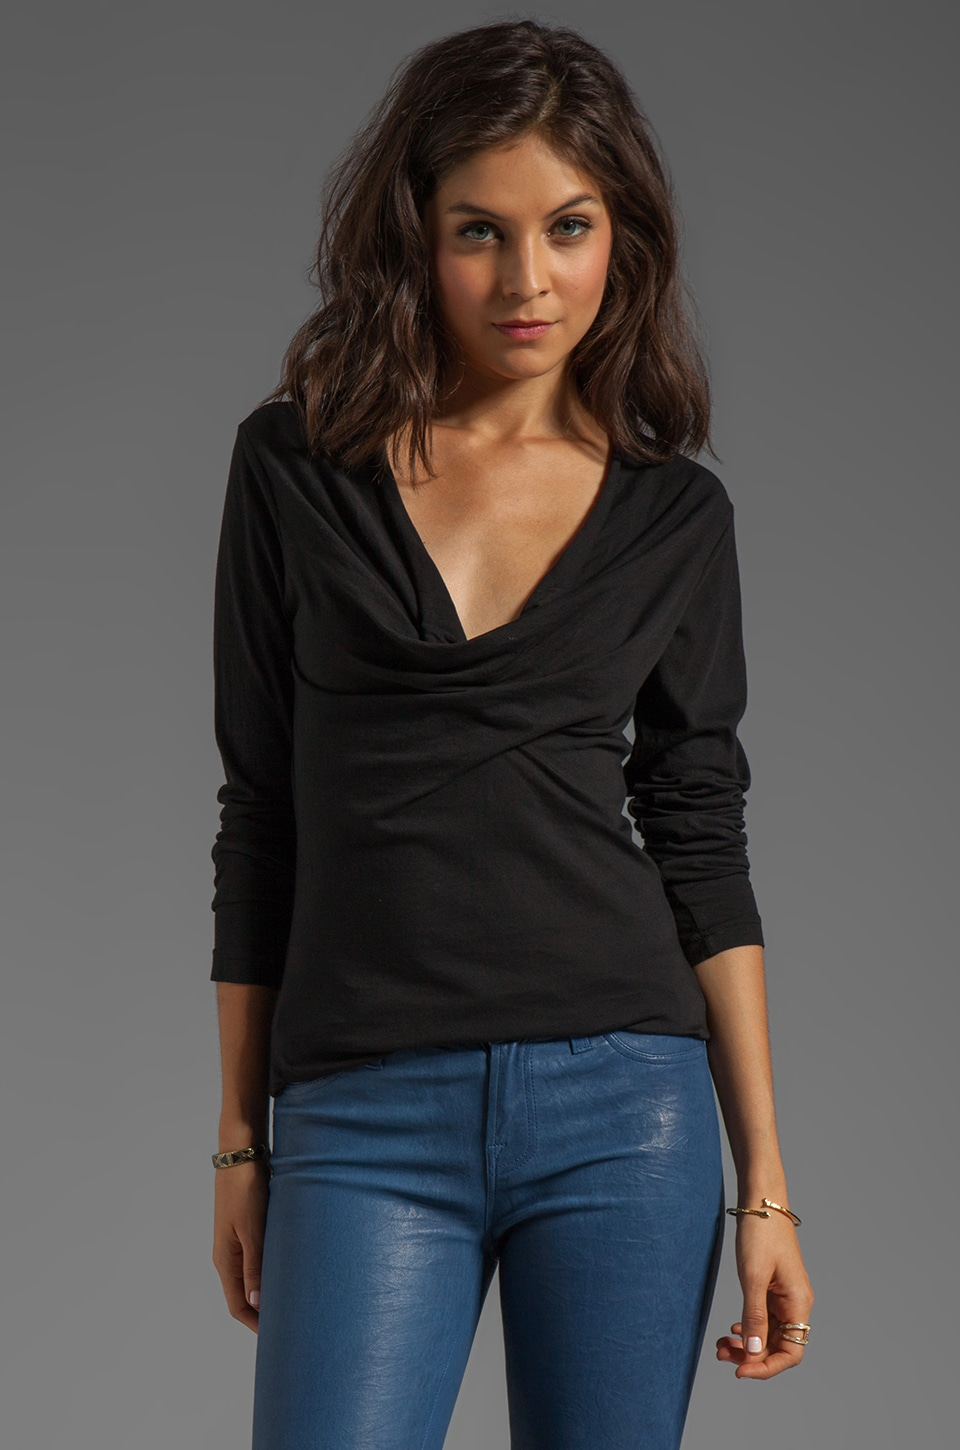 Bobi Light Weight Jersey Long Sleeve Cowl Neck Tee in Black